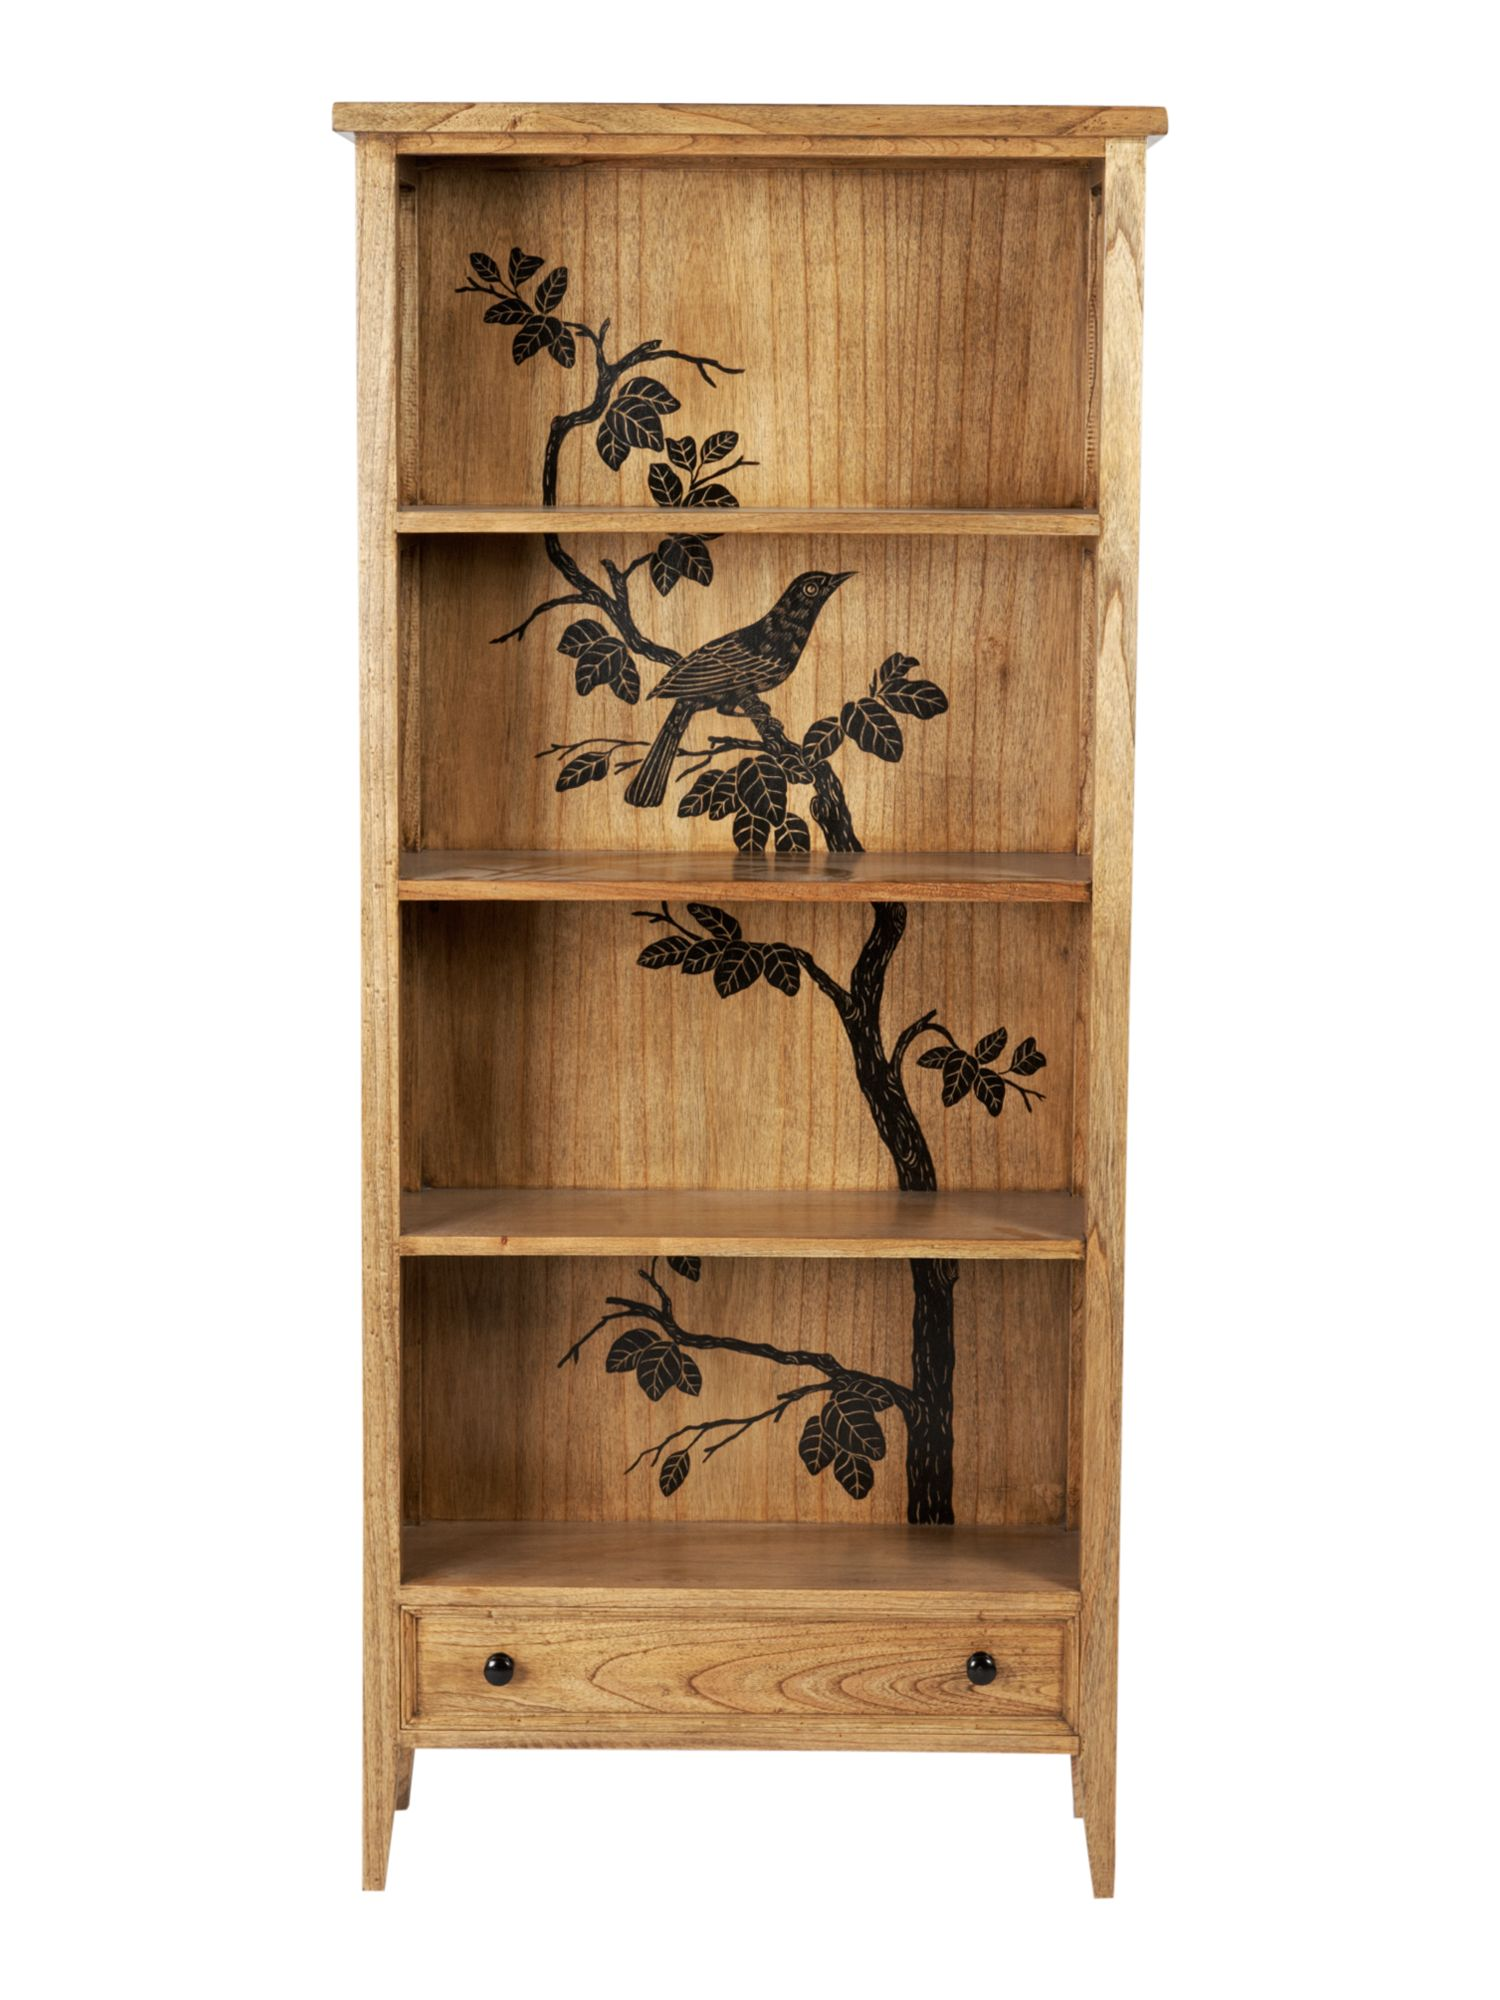 Blackbird bookcase